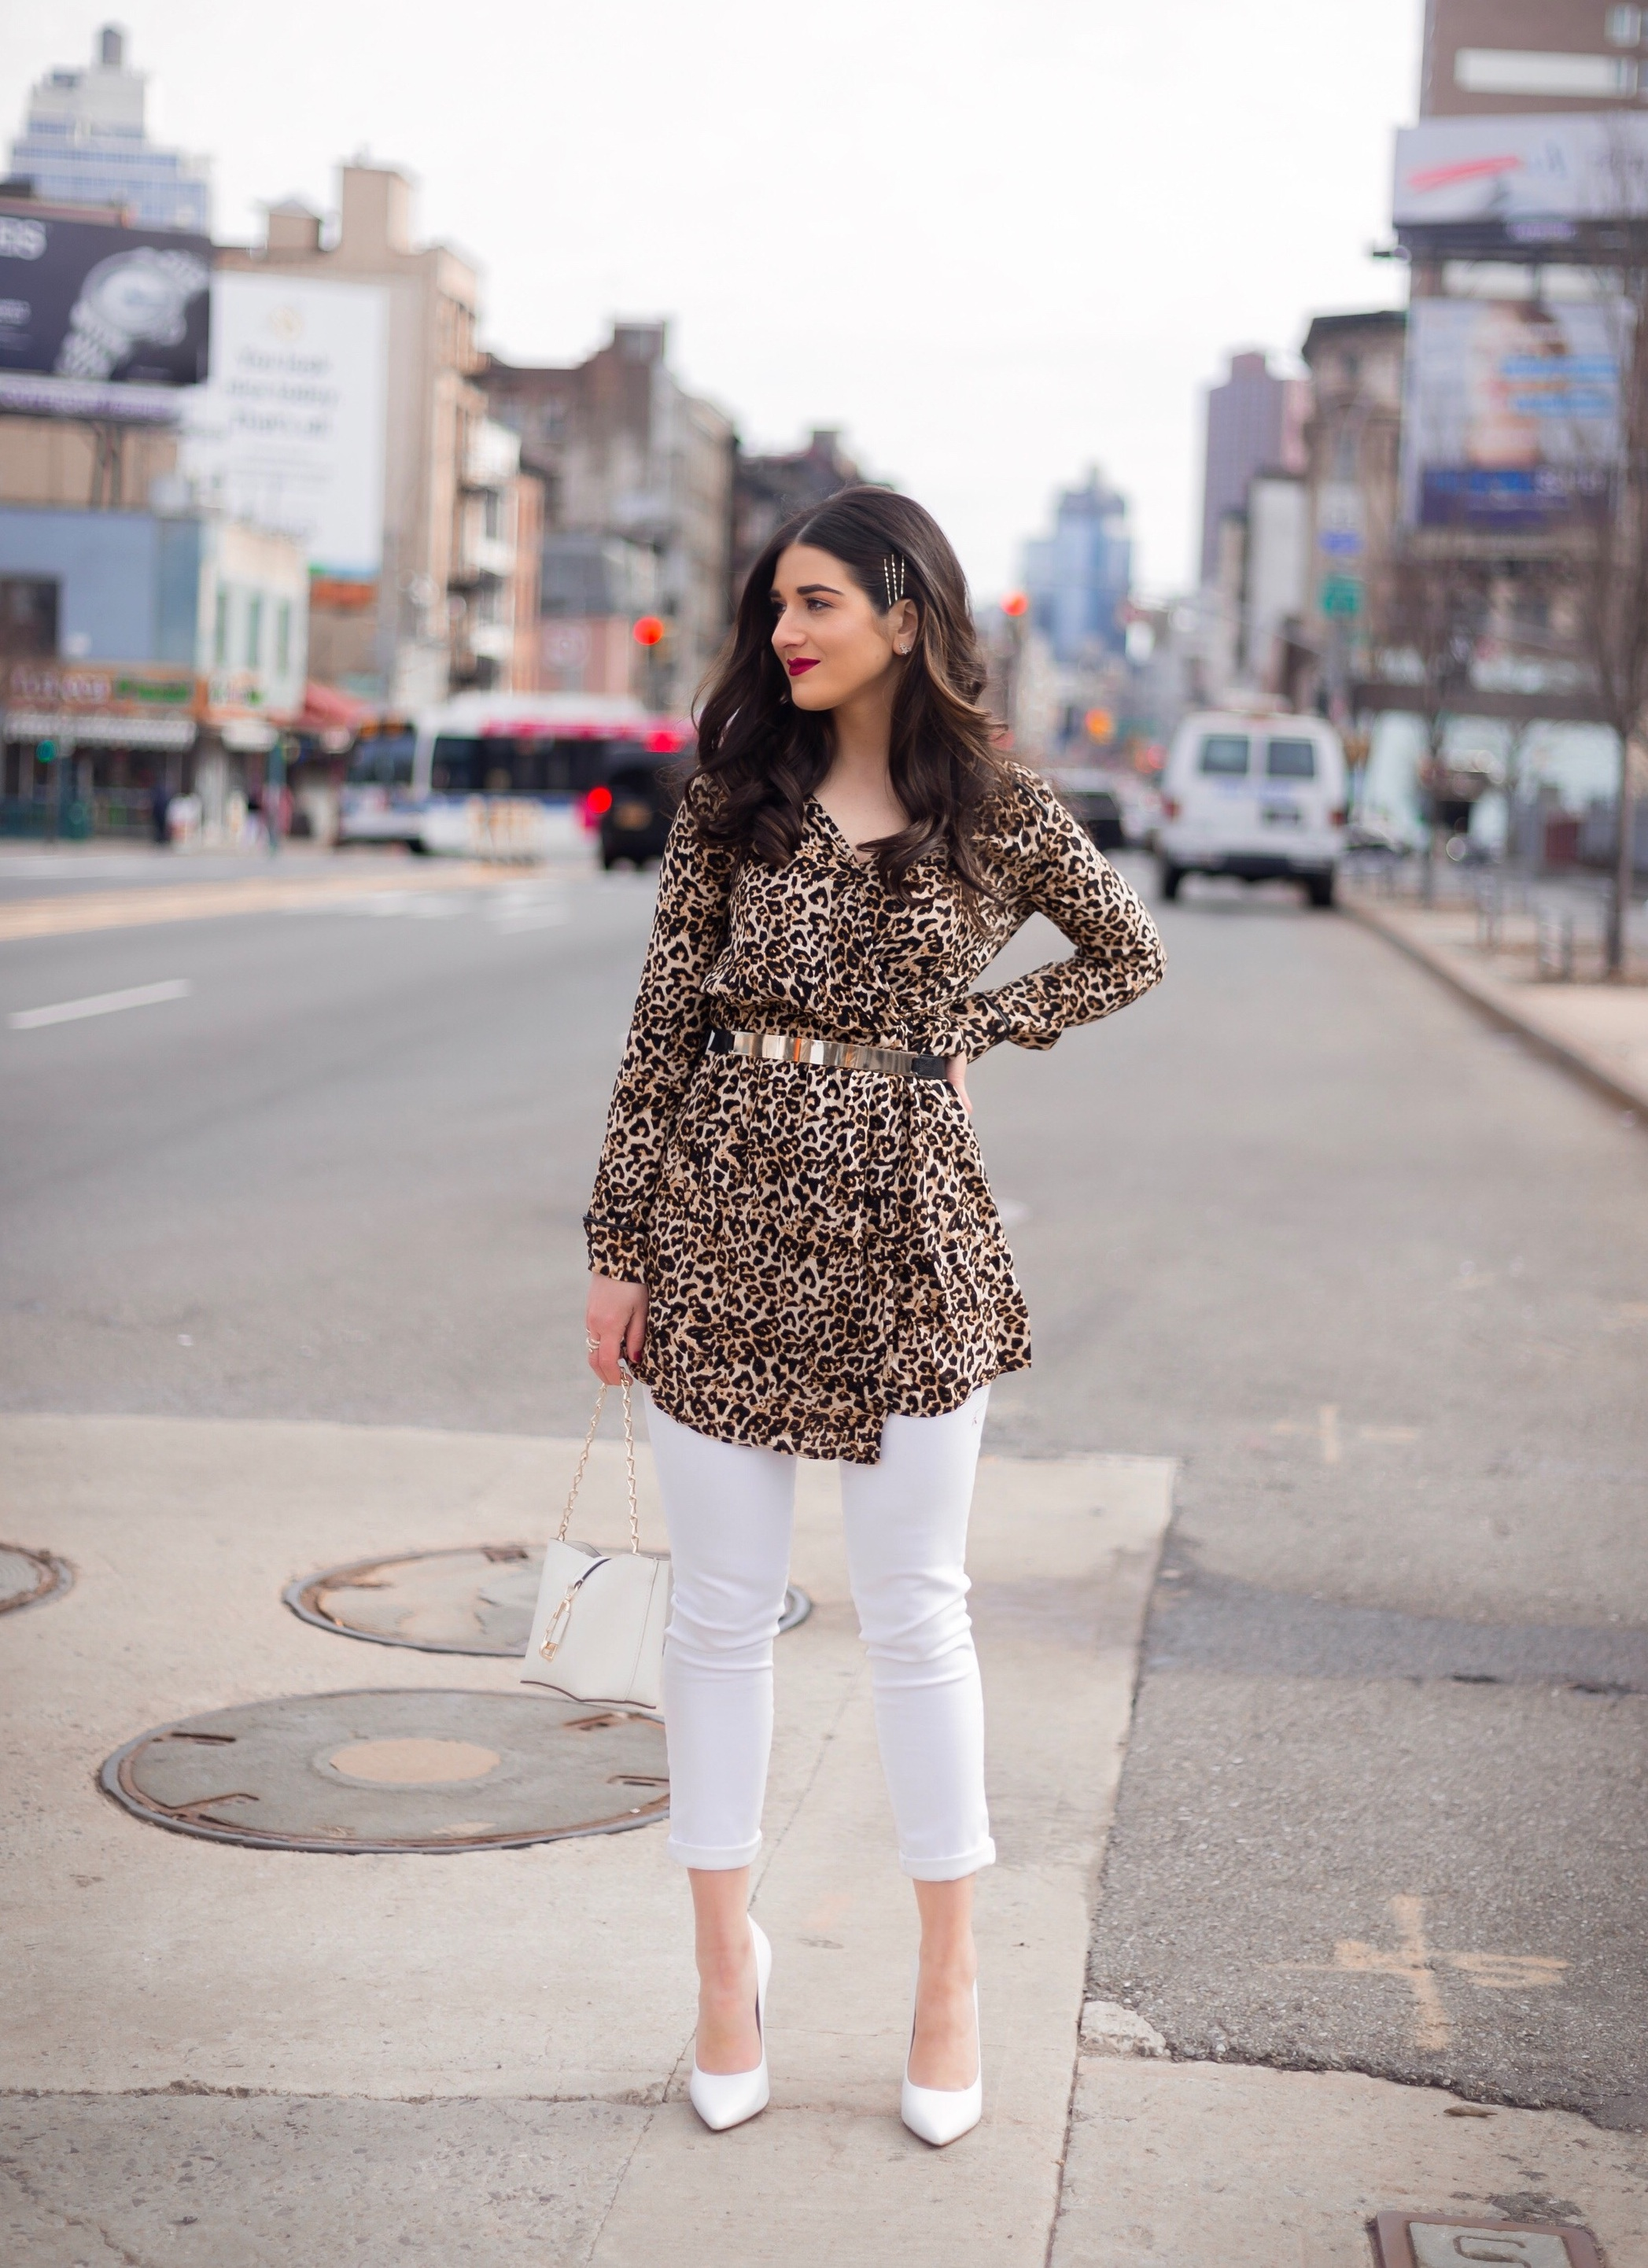 Dressing Up My Democracy Denim Esther Santer Fashion Blog NYC Street Style Blogger Outfit OOTD Trendy Shopping White Jeans Leopard Top Coat Inspo Bobby Pins Hair Trend White Heels Chaya Ross Photography Wear Gold Belt Cream Chain Small Bag Inspiration.jpg